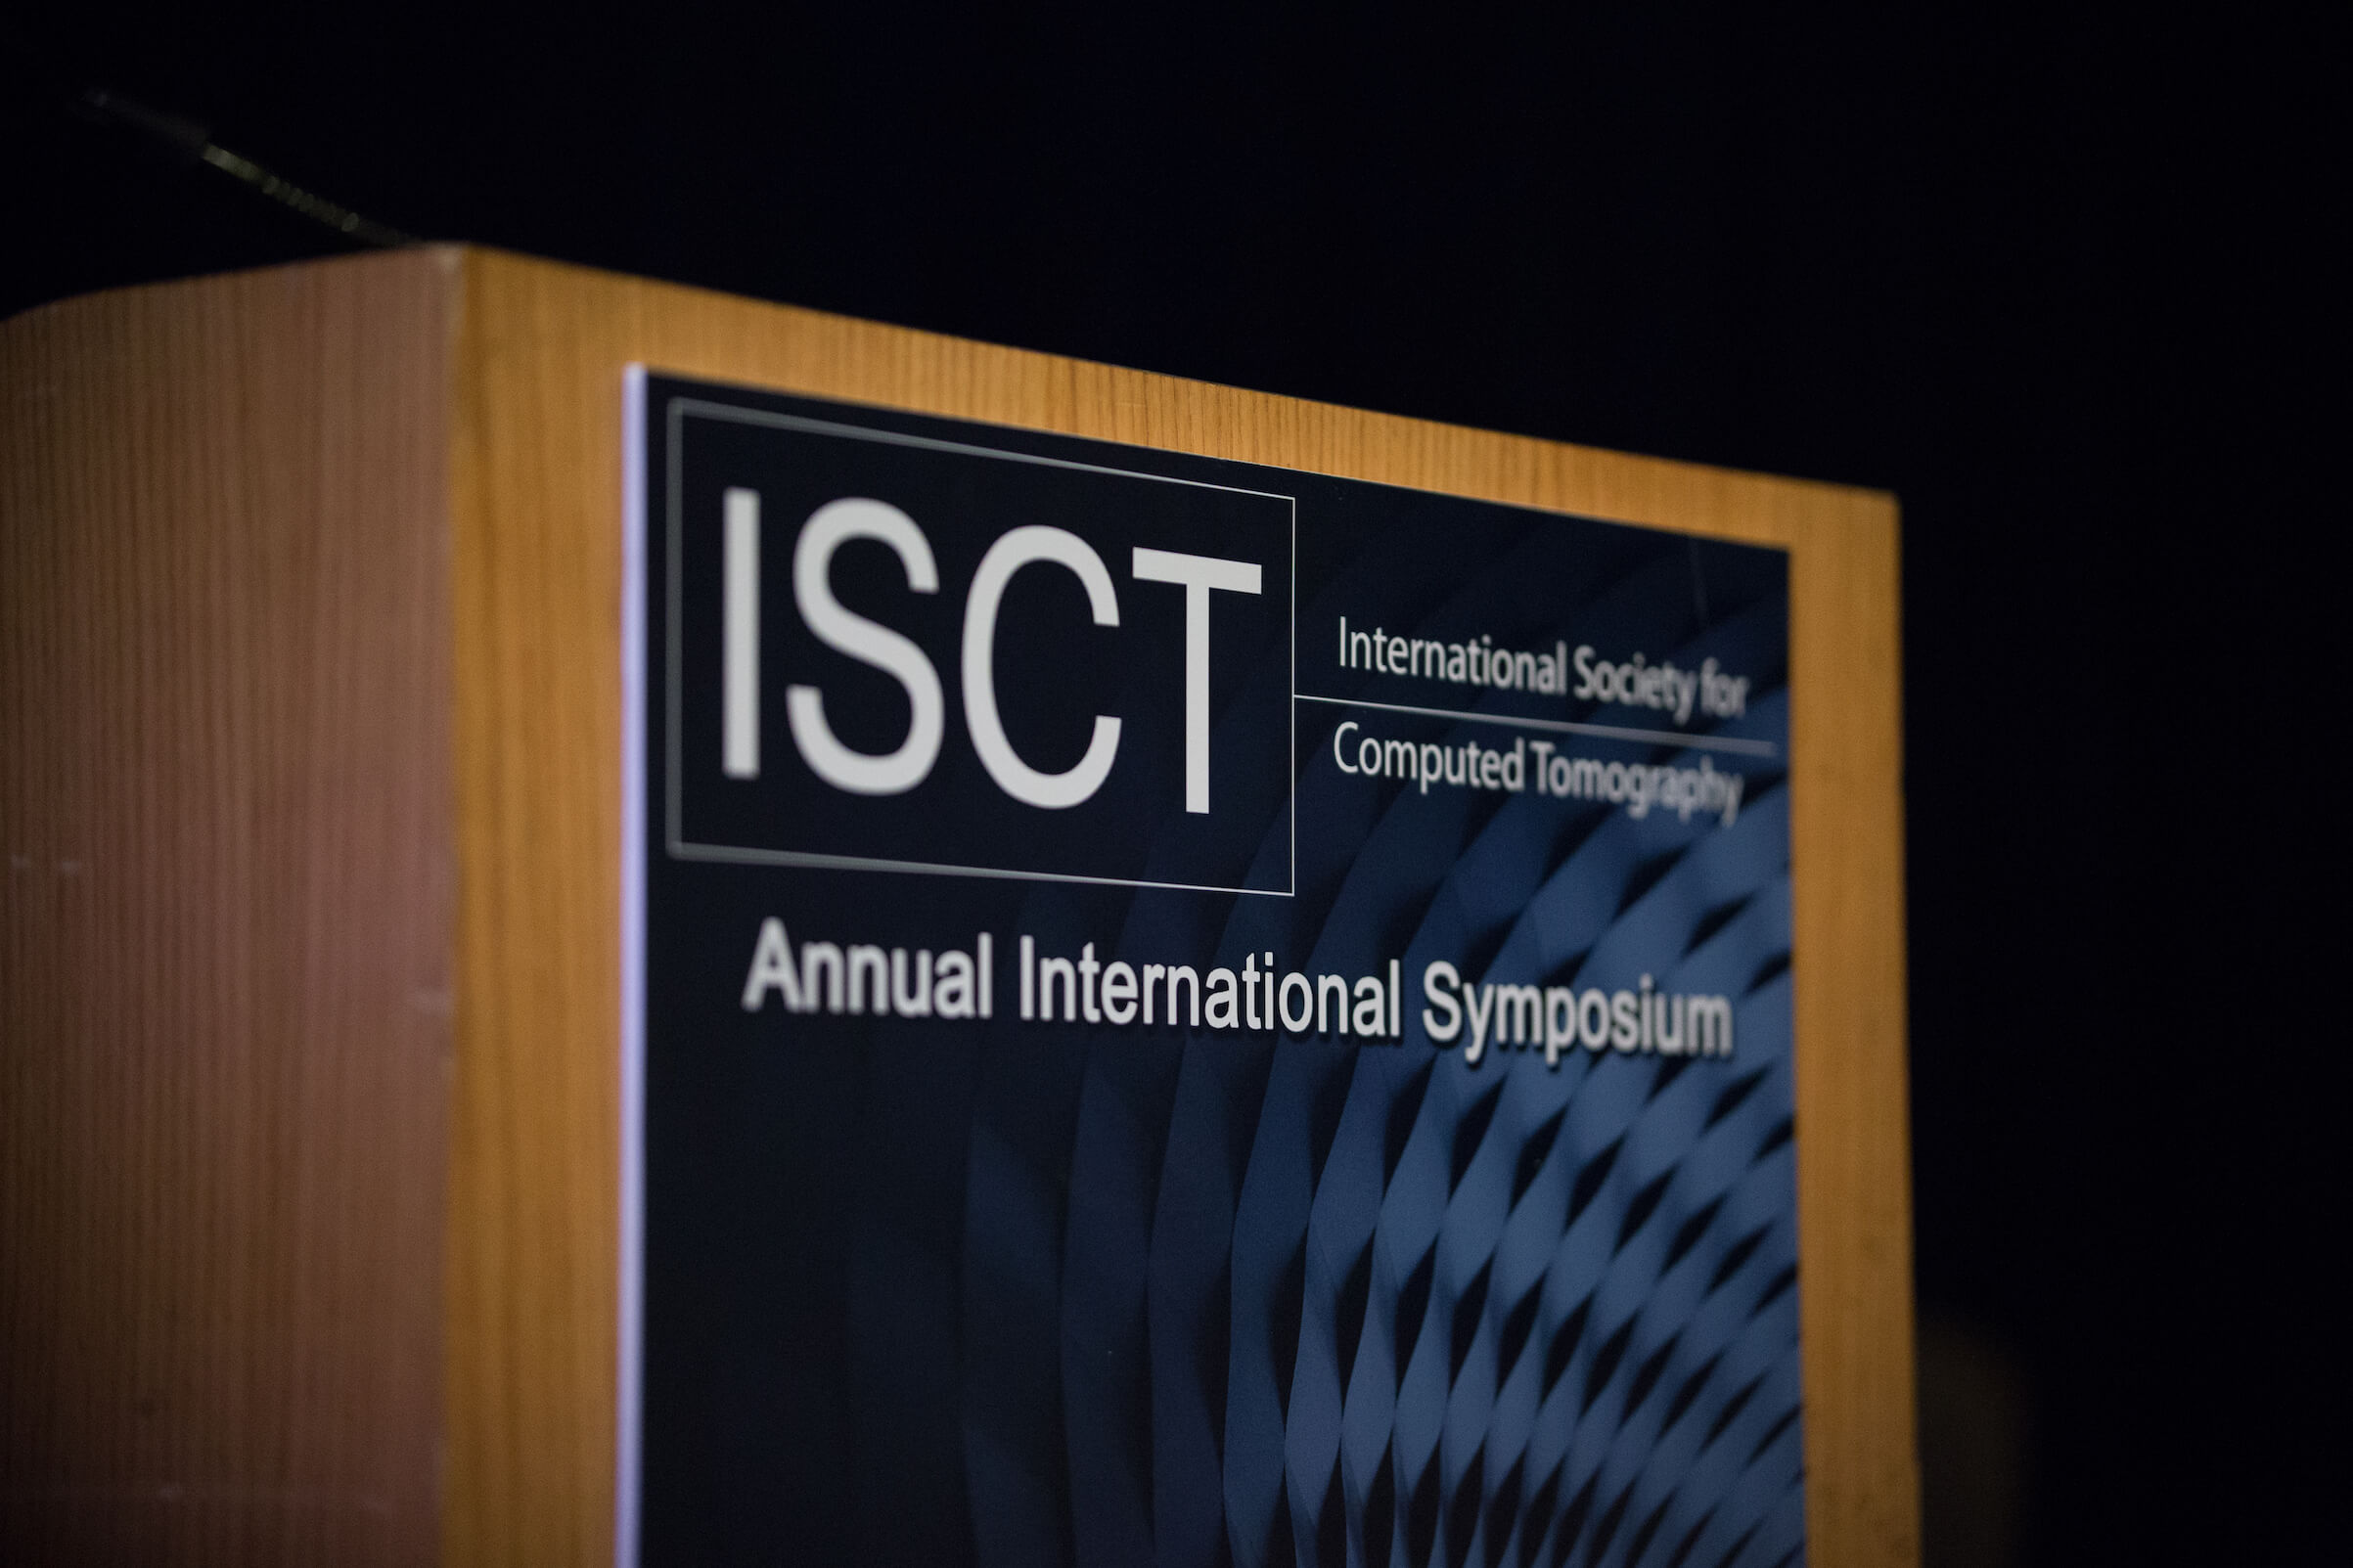 ISCT 2019 Faculty